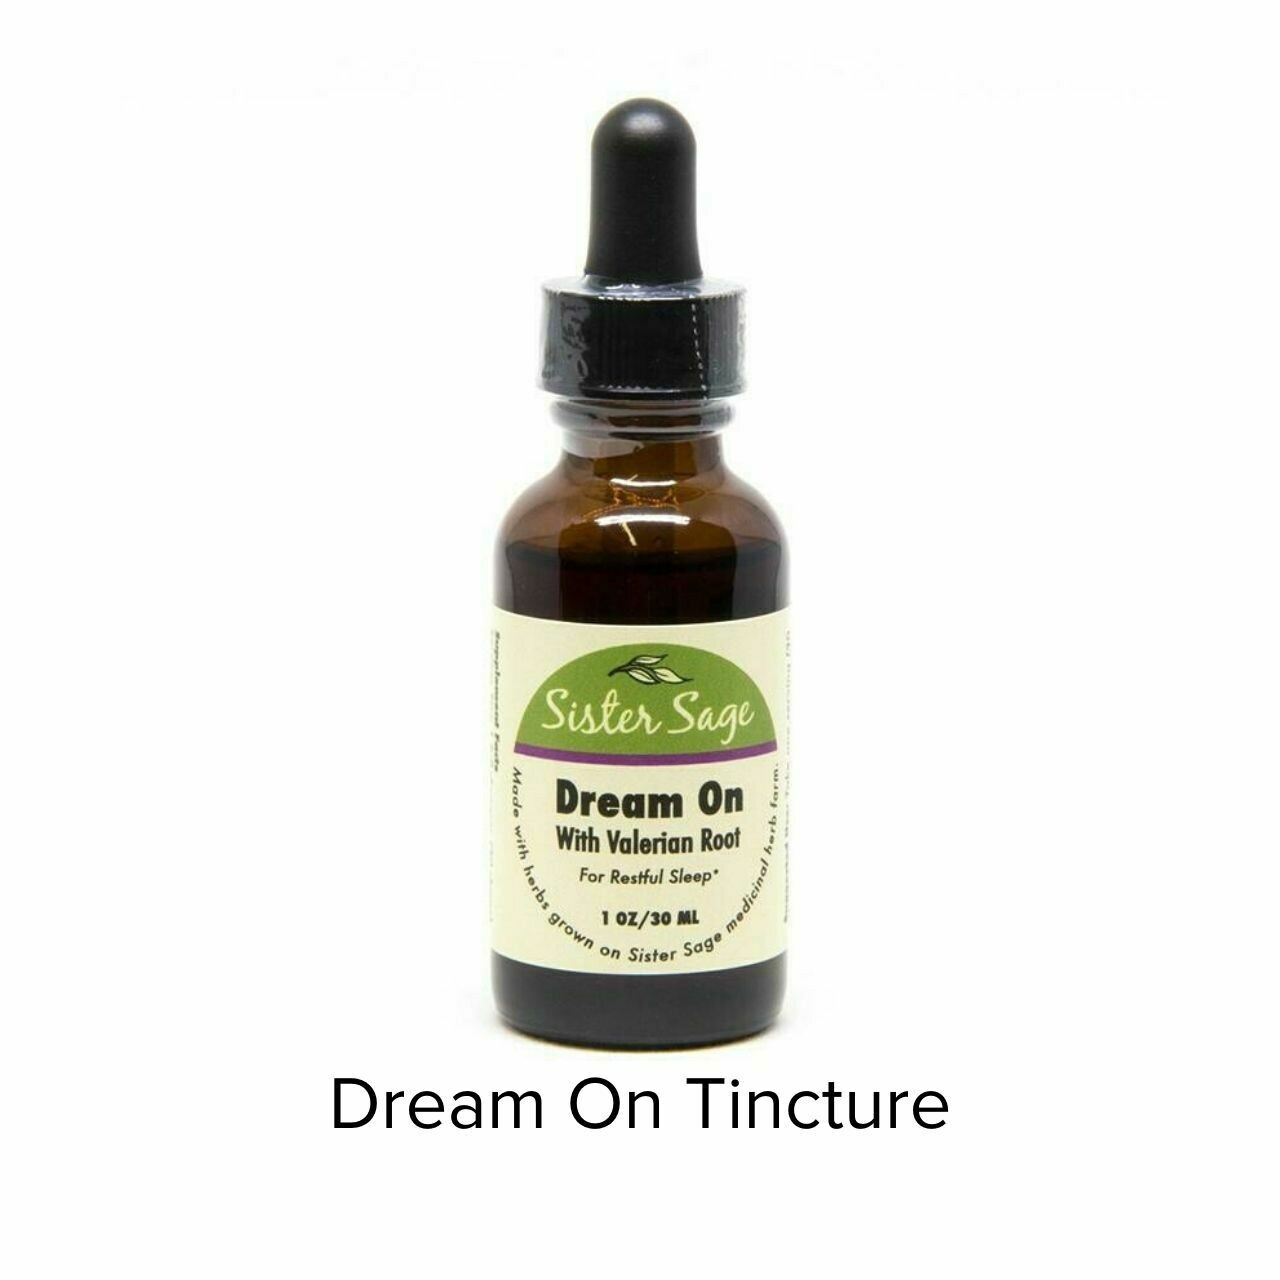 Sister Sage Dream On Tincture